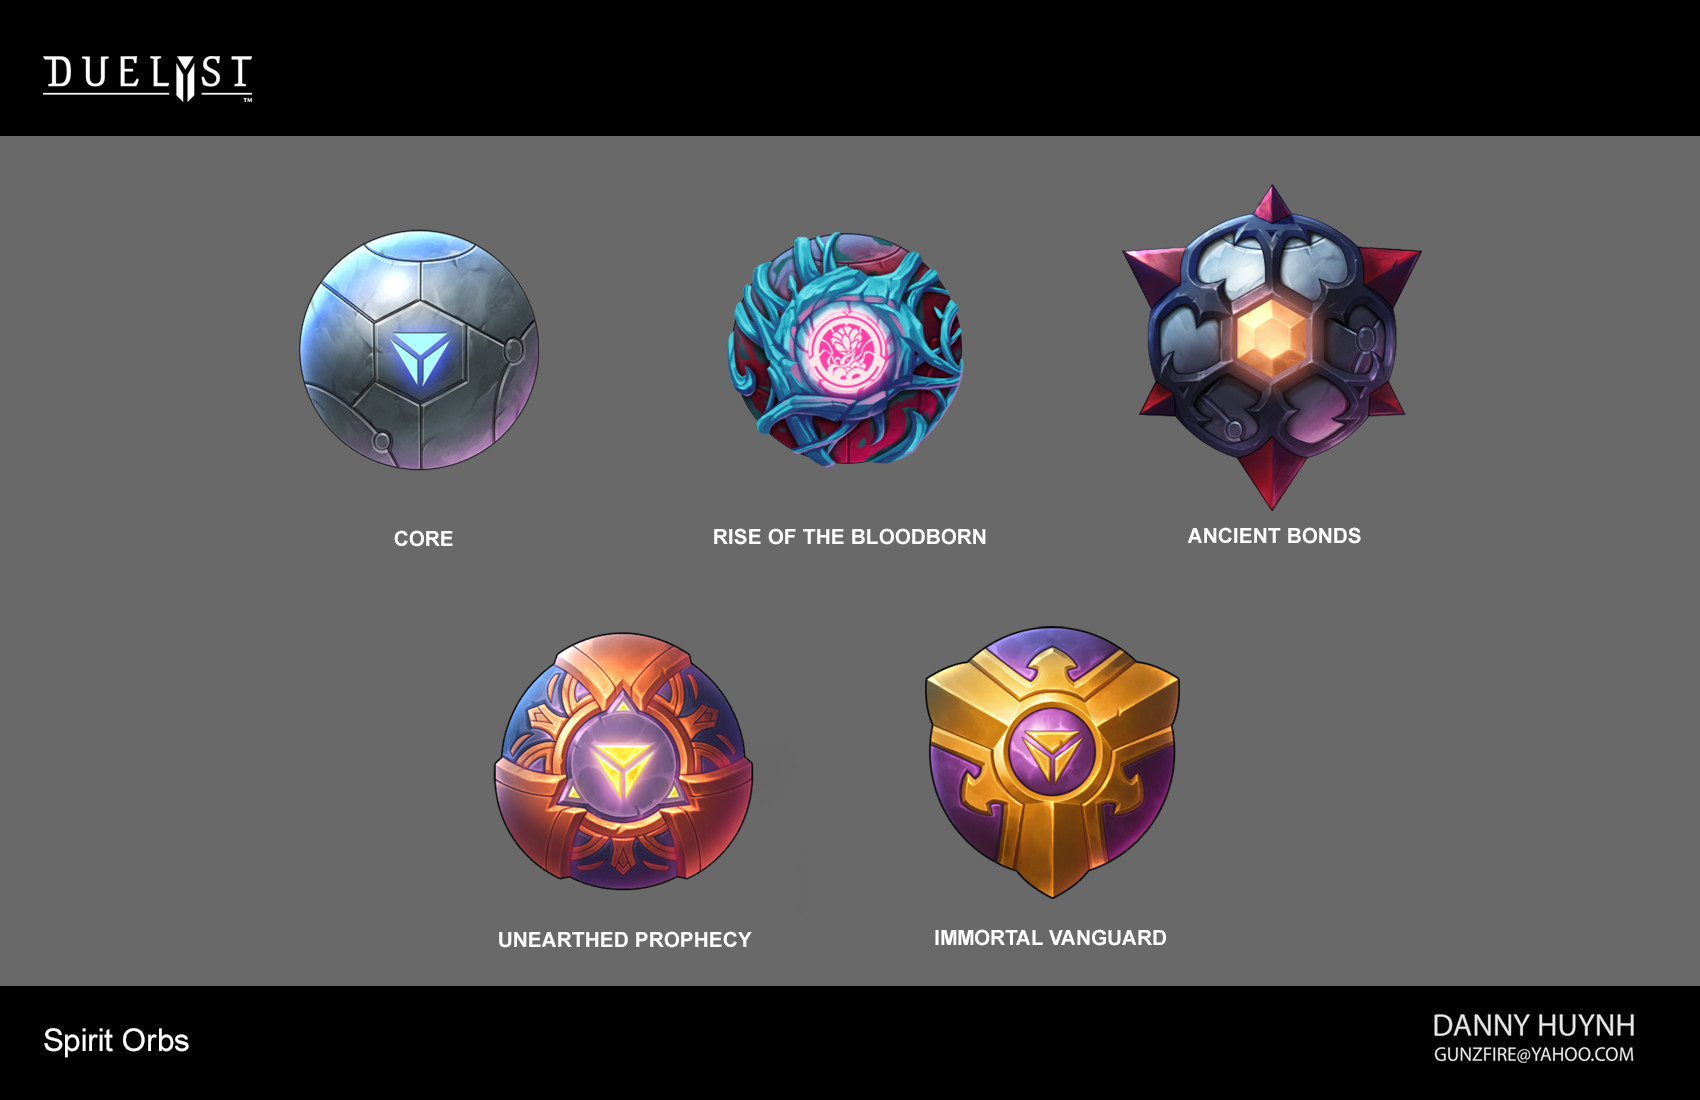 Final orb designs for expansion sets that was released.